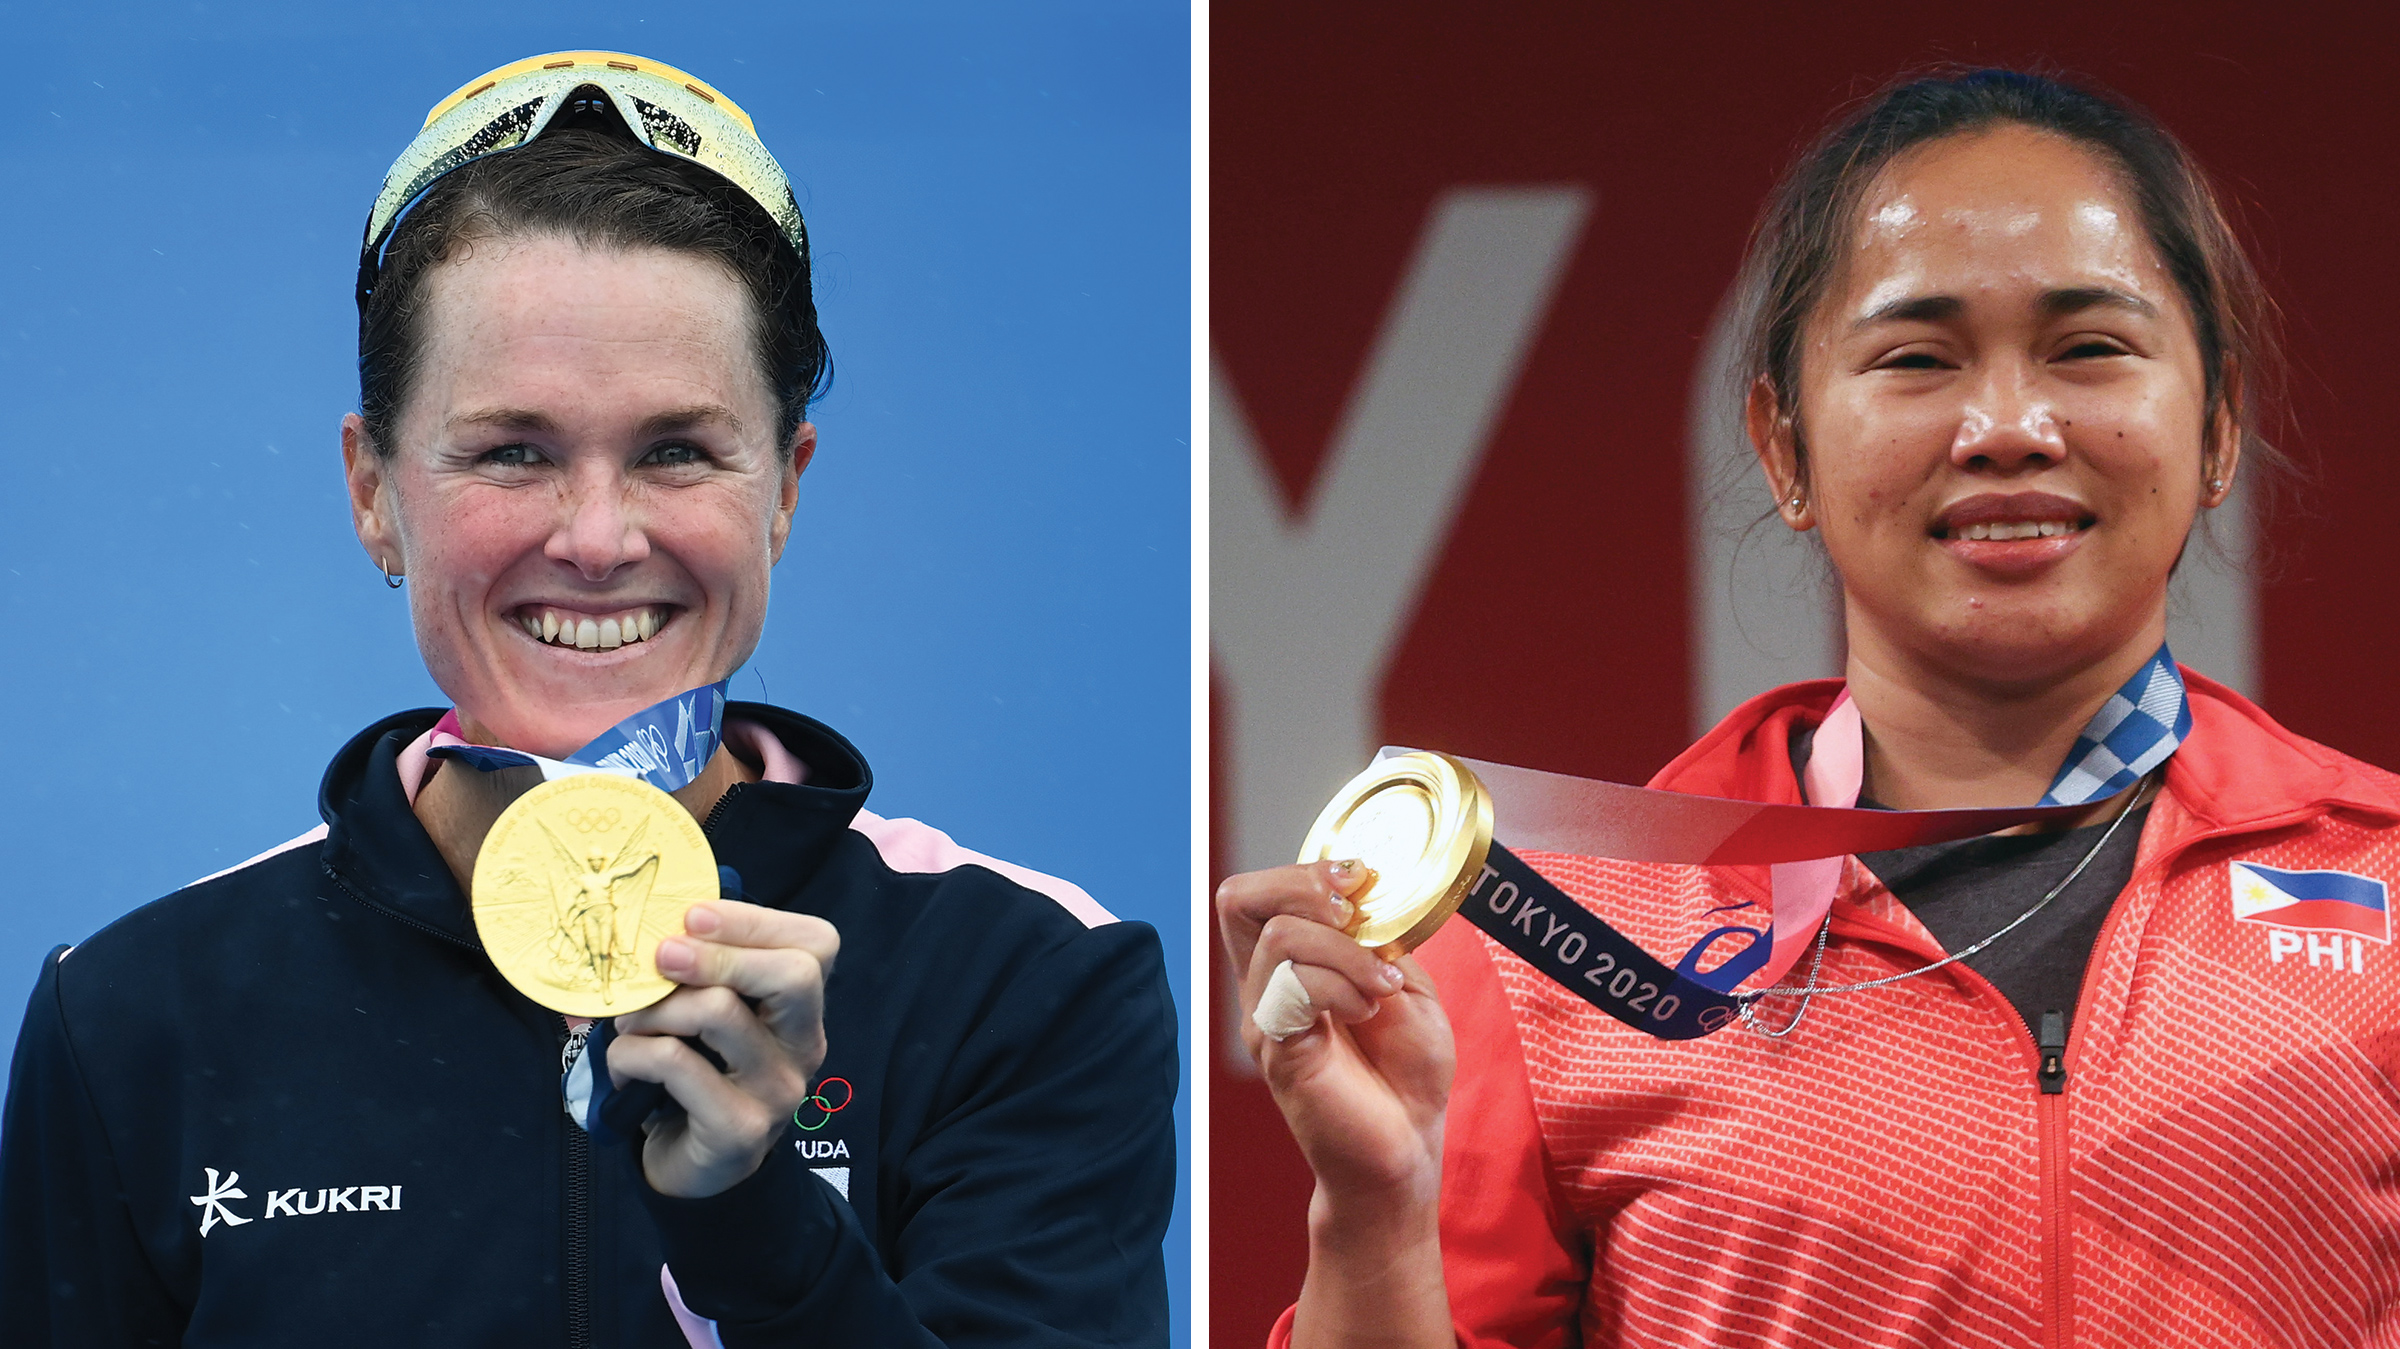 Flora Duffy of Team Bermuda with her gold medal (left) and Hidilyn Diaz of Team Philippines posing with the gold medal.